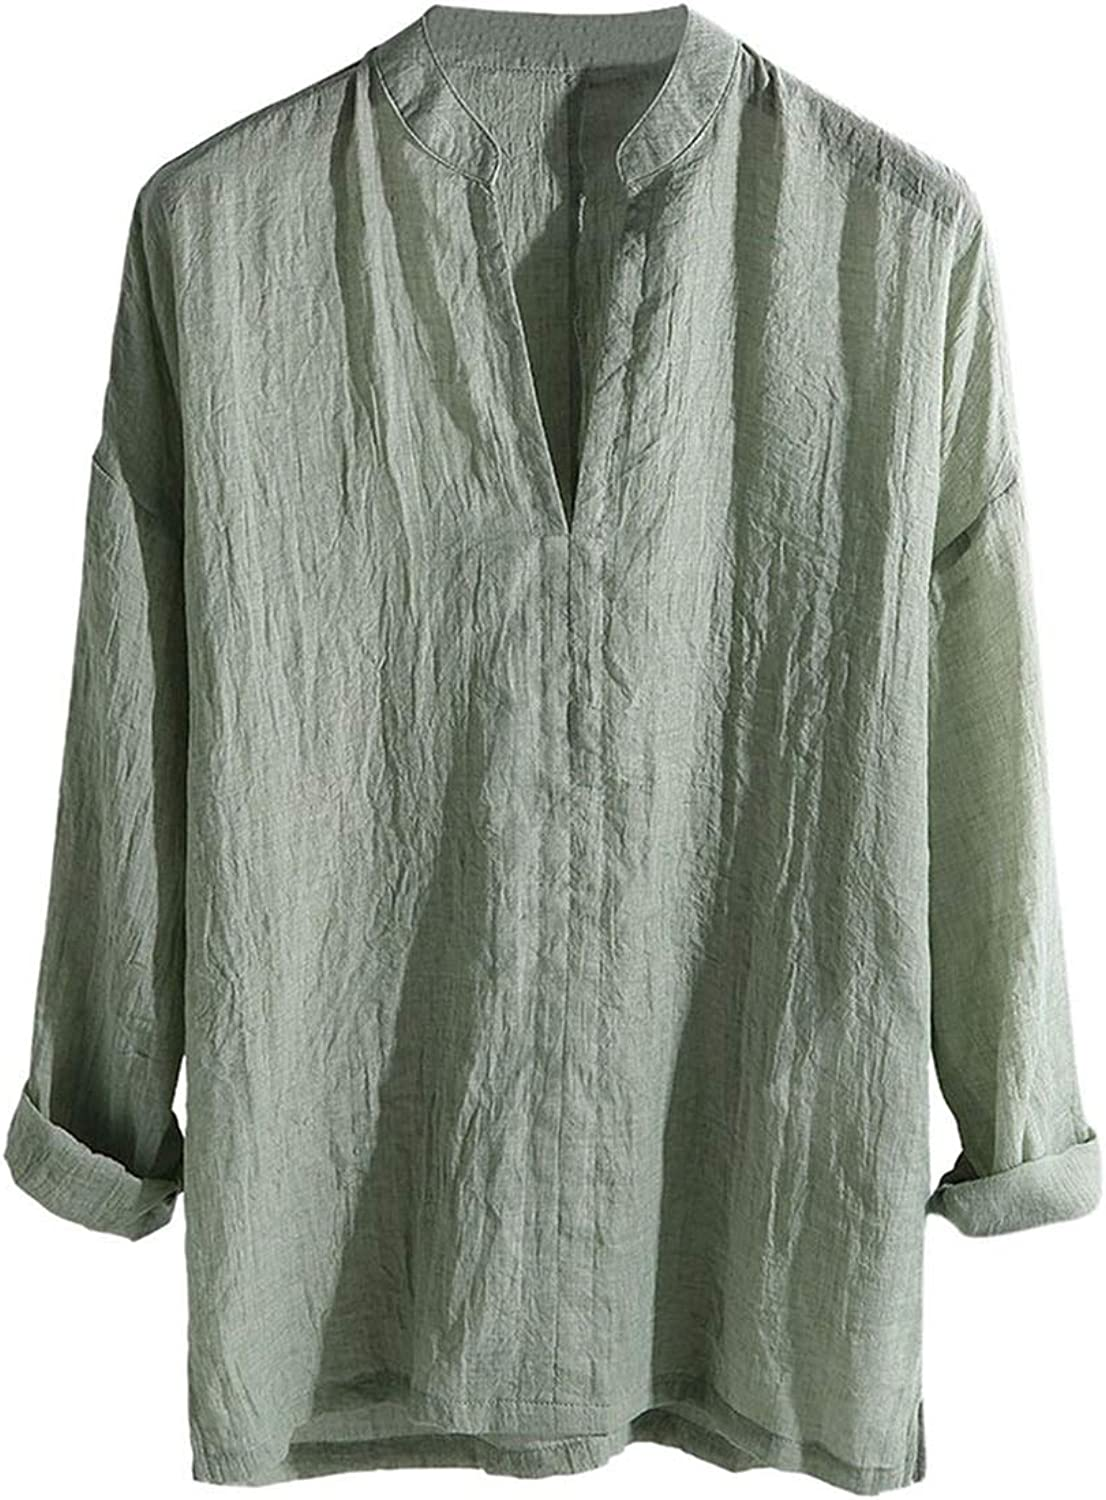 FULLINE Men's Casual Shirt Breathable Long Sleeve Loose Solid Color V Neck Top Blouse,Green,L